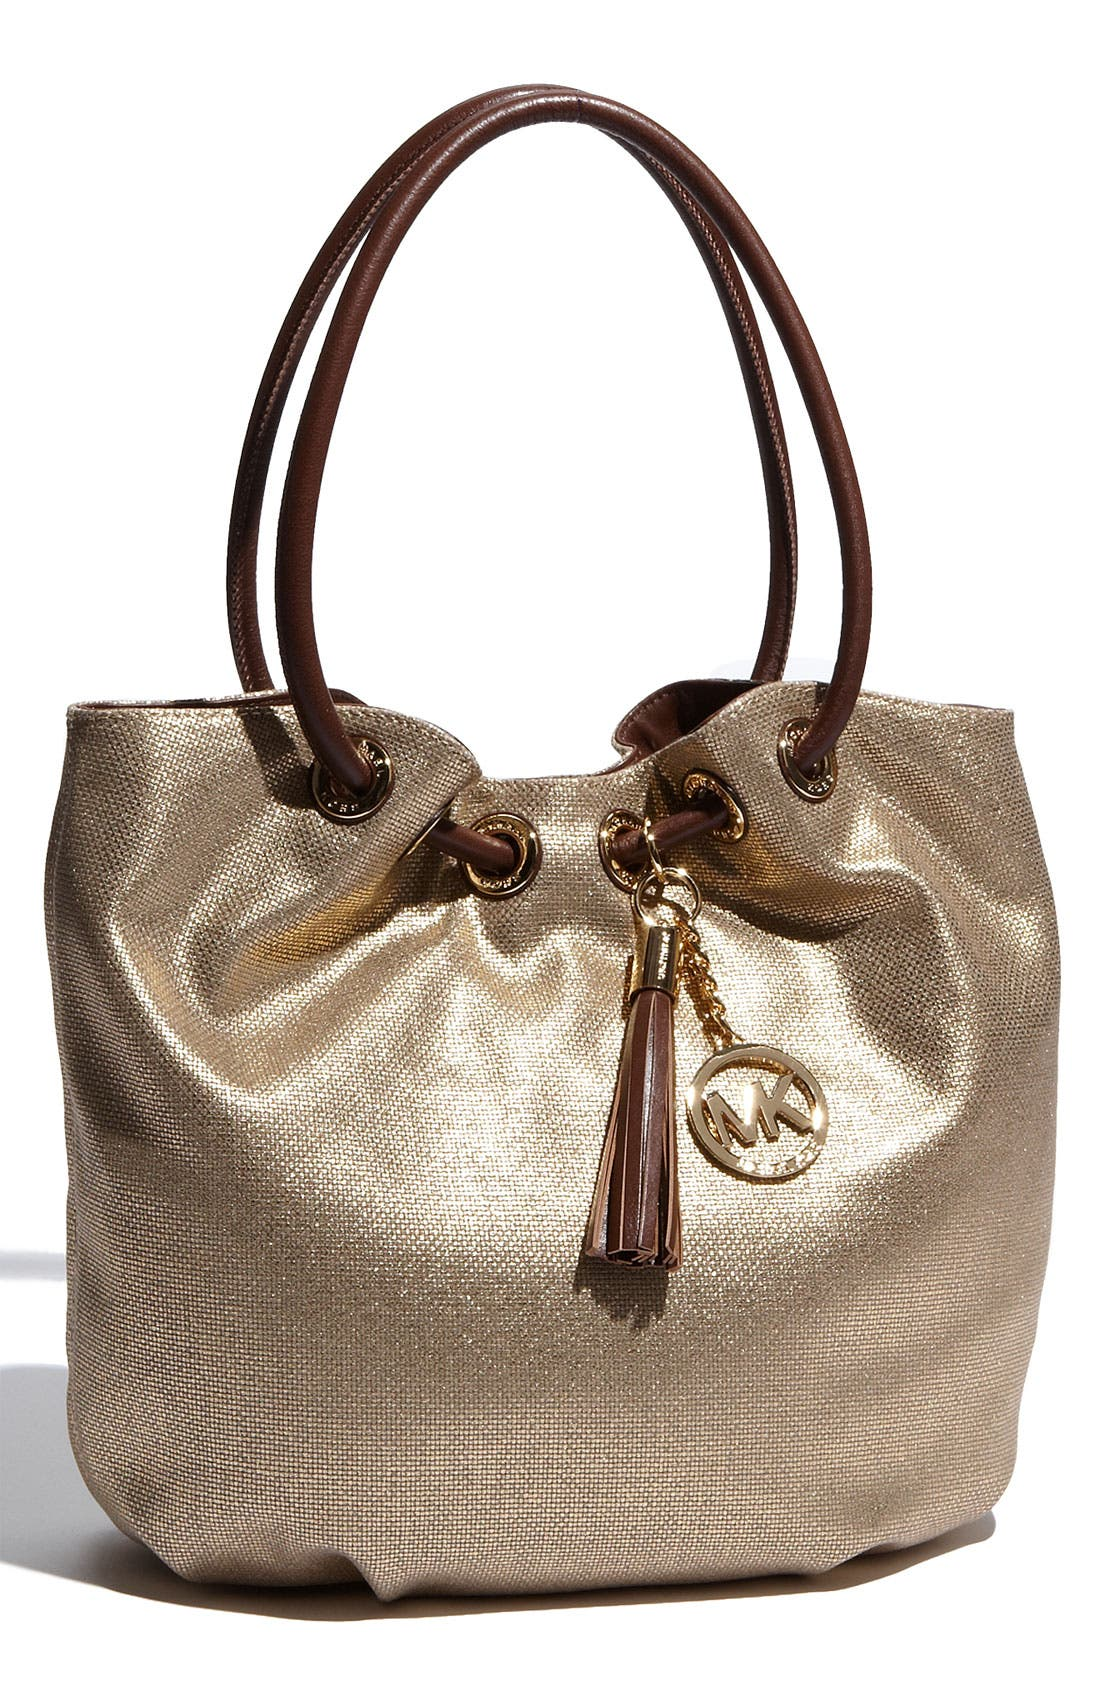 Alternate Image 1 Selected - MICHAEL Michael Kors 'Ring' Metallic Canvas Tote